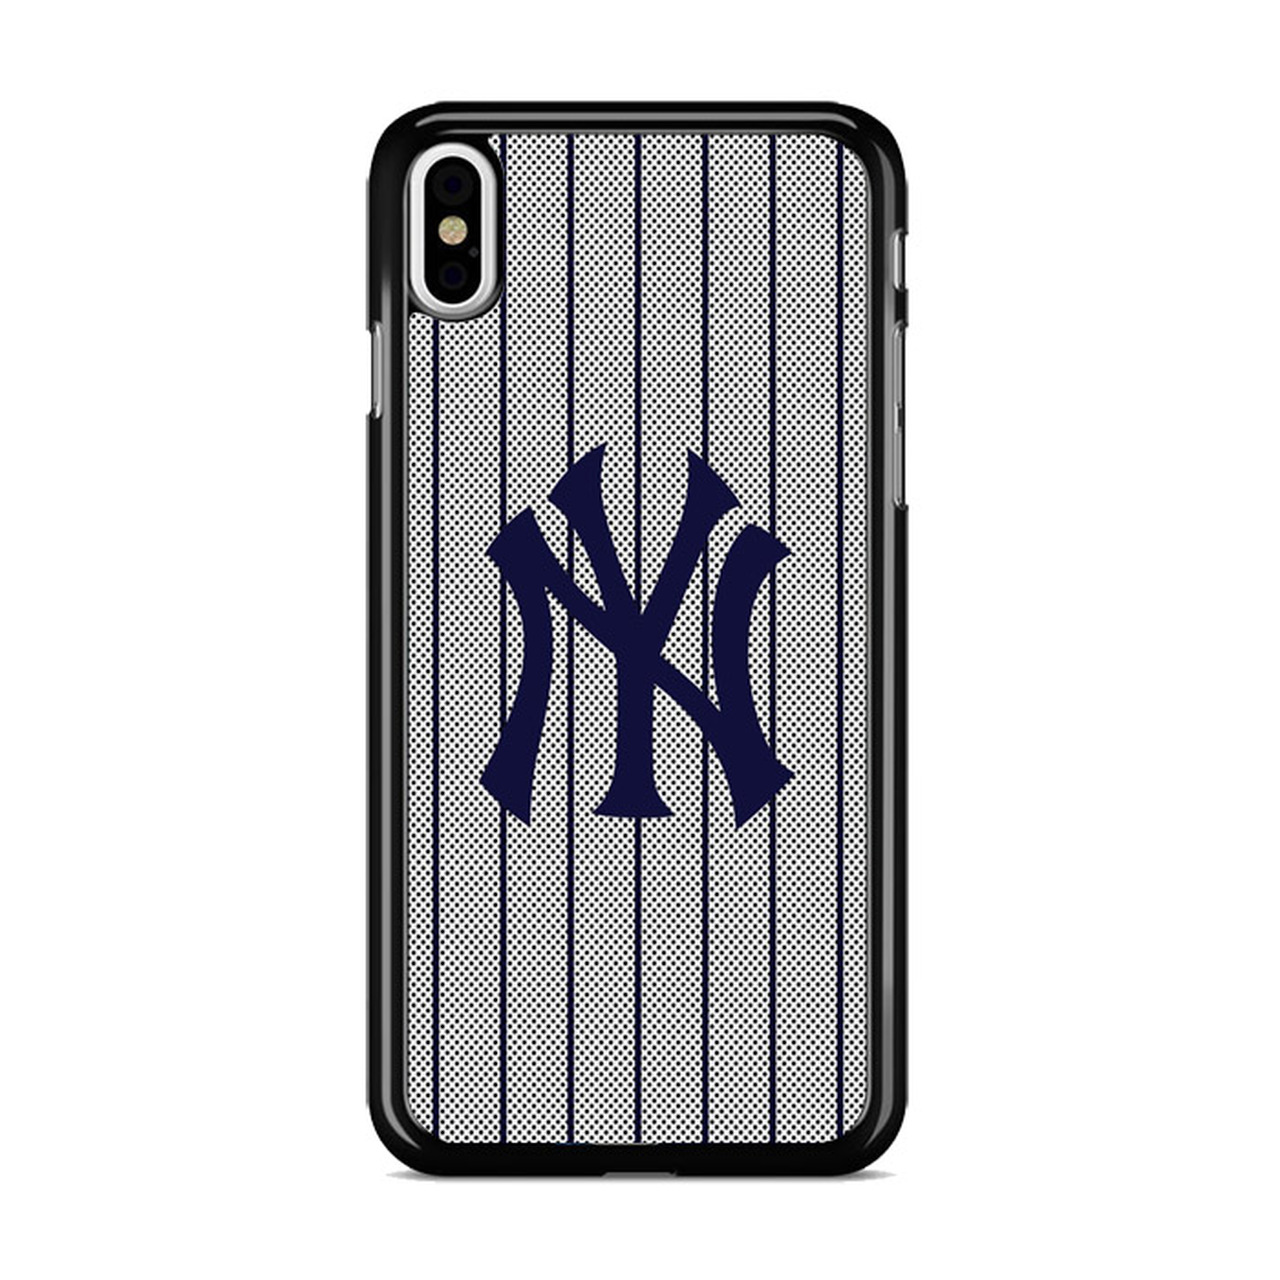 Yankees Phone Wallpaper posted by Zoey ...